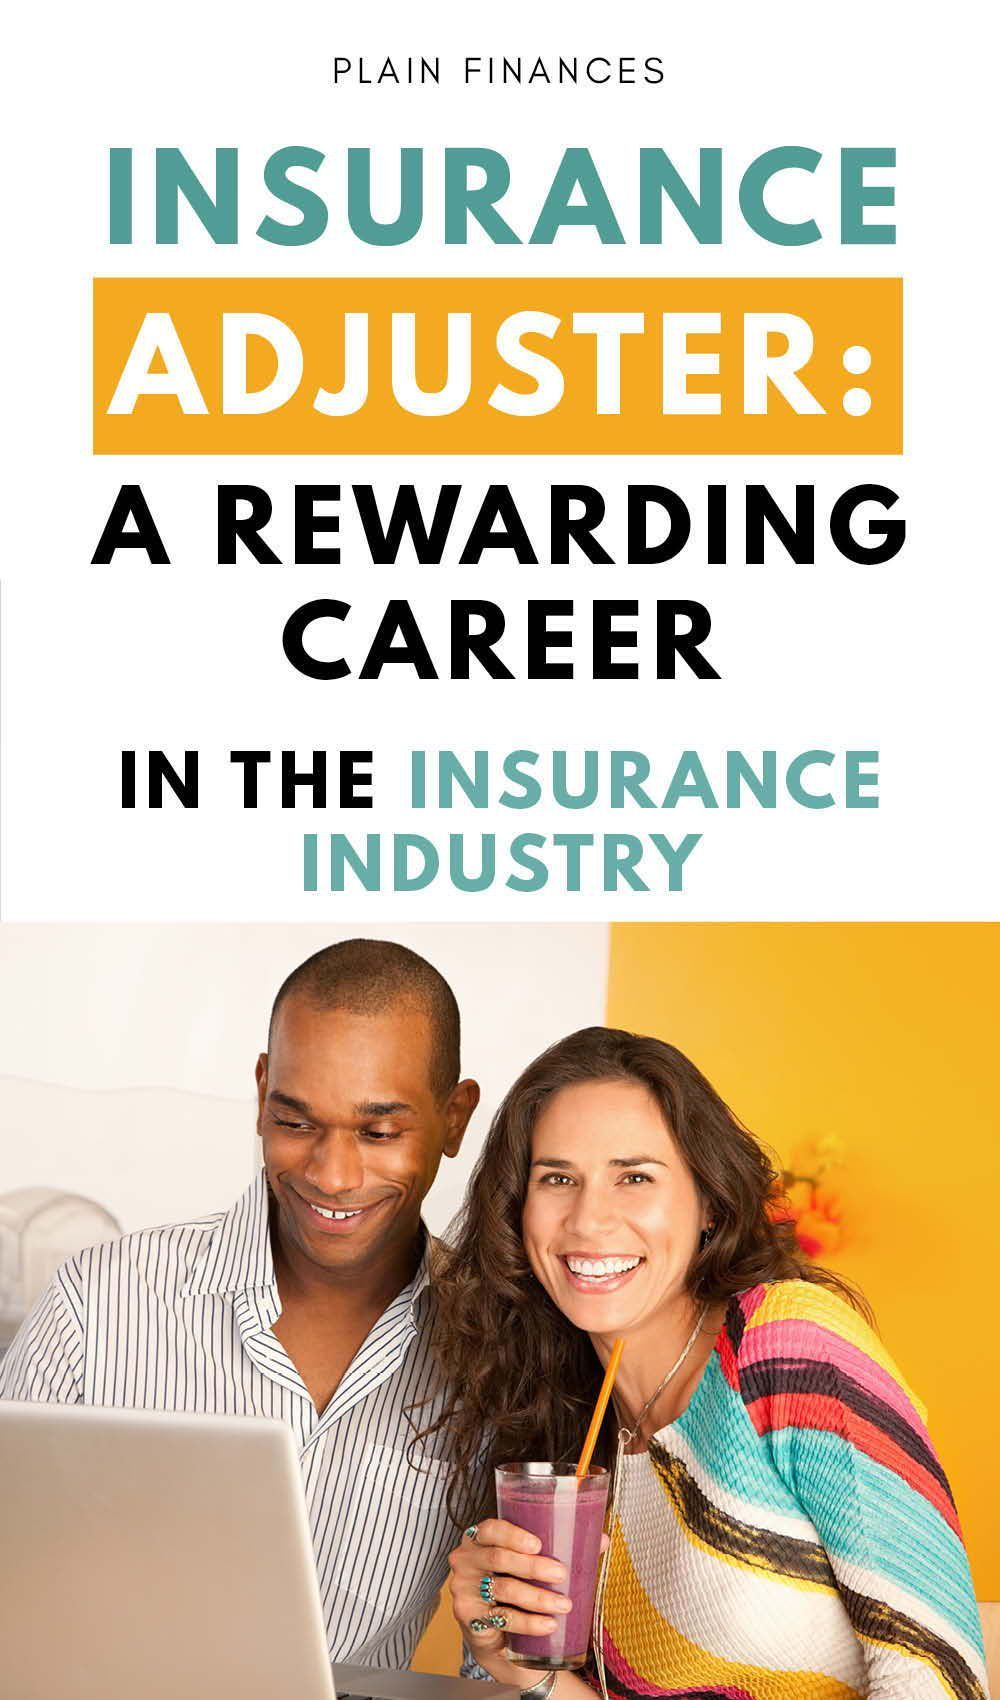 Insurance Adjuster A Rewarding Career In The Insurance Industry Careers And Jobs Personal Finance Advice Insurance Industry Finance Career